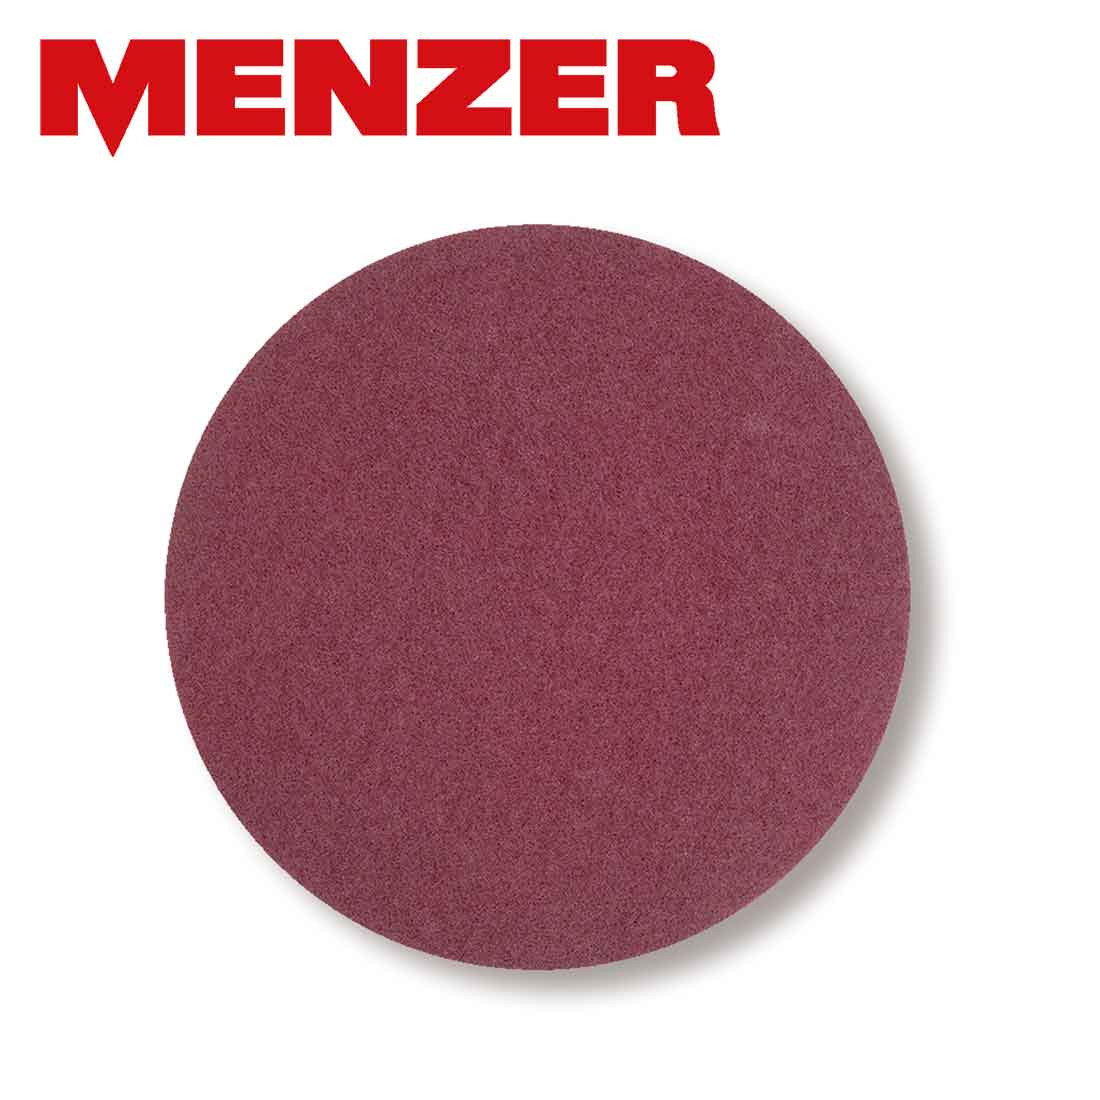 MENZER Sanding fleece